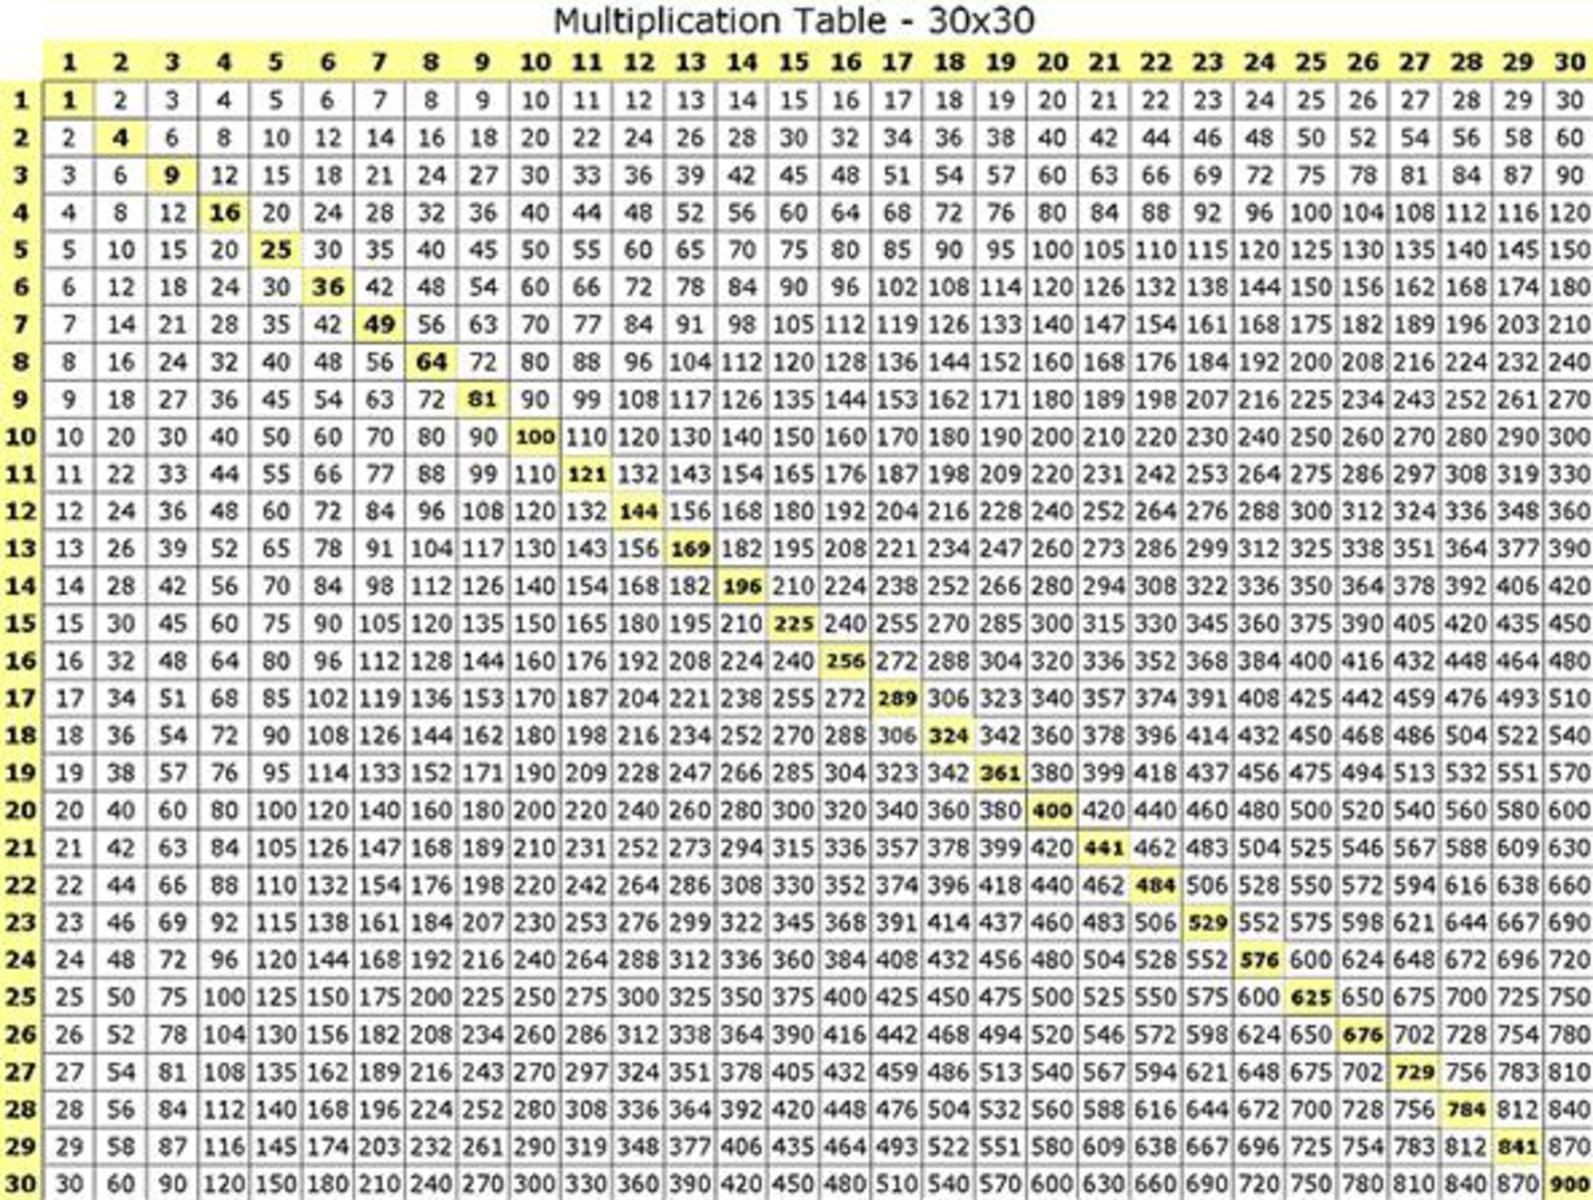 Large Multiplication Table 2 , Large Multiplication Table for Printable 20X20 Multiplication Table